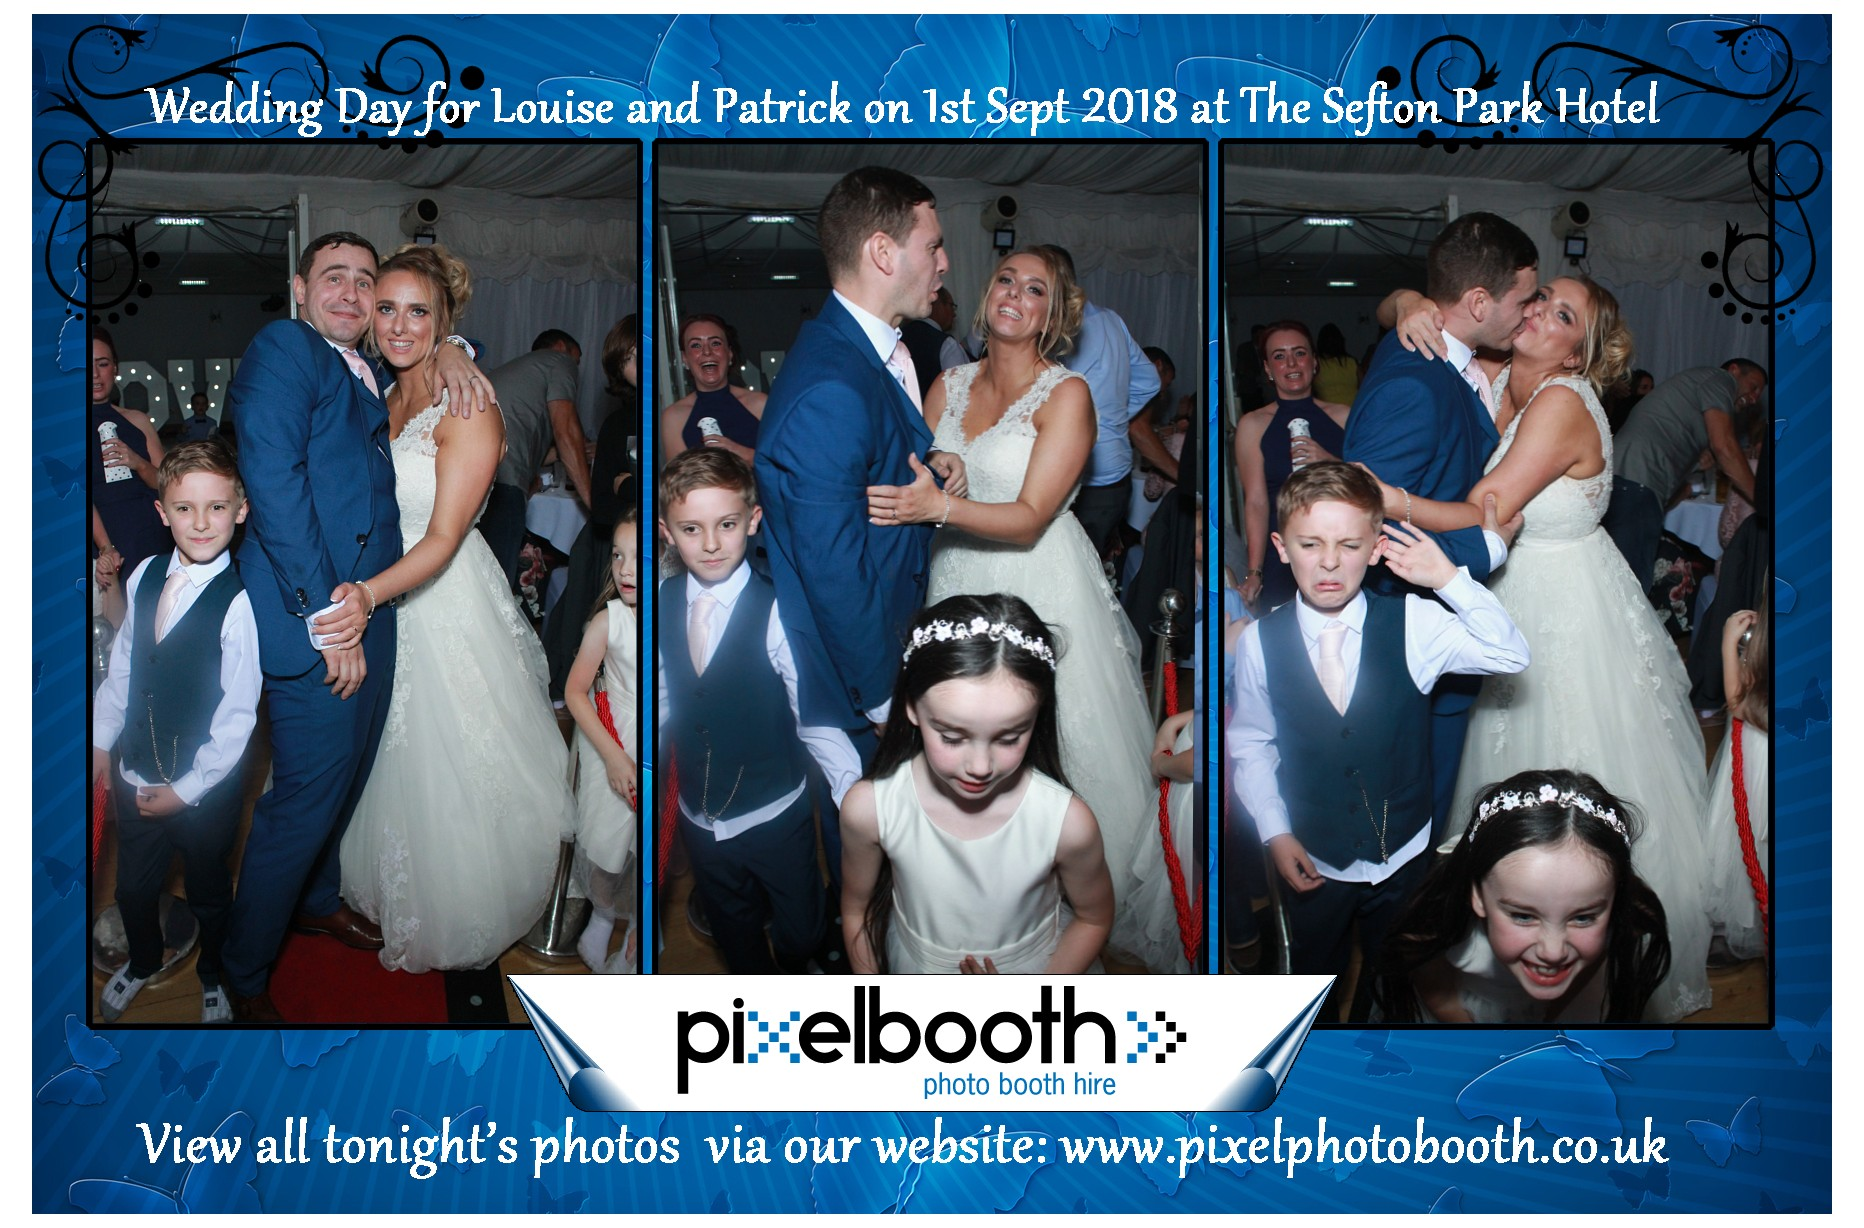 1st Sept 2018: Louise & Patrick's Wedding at The Sefton Park Hotel